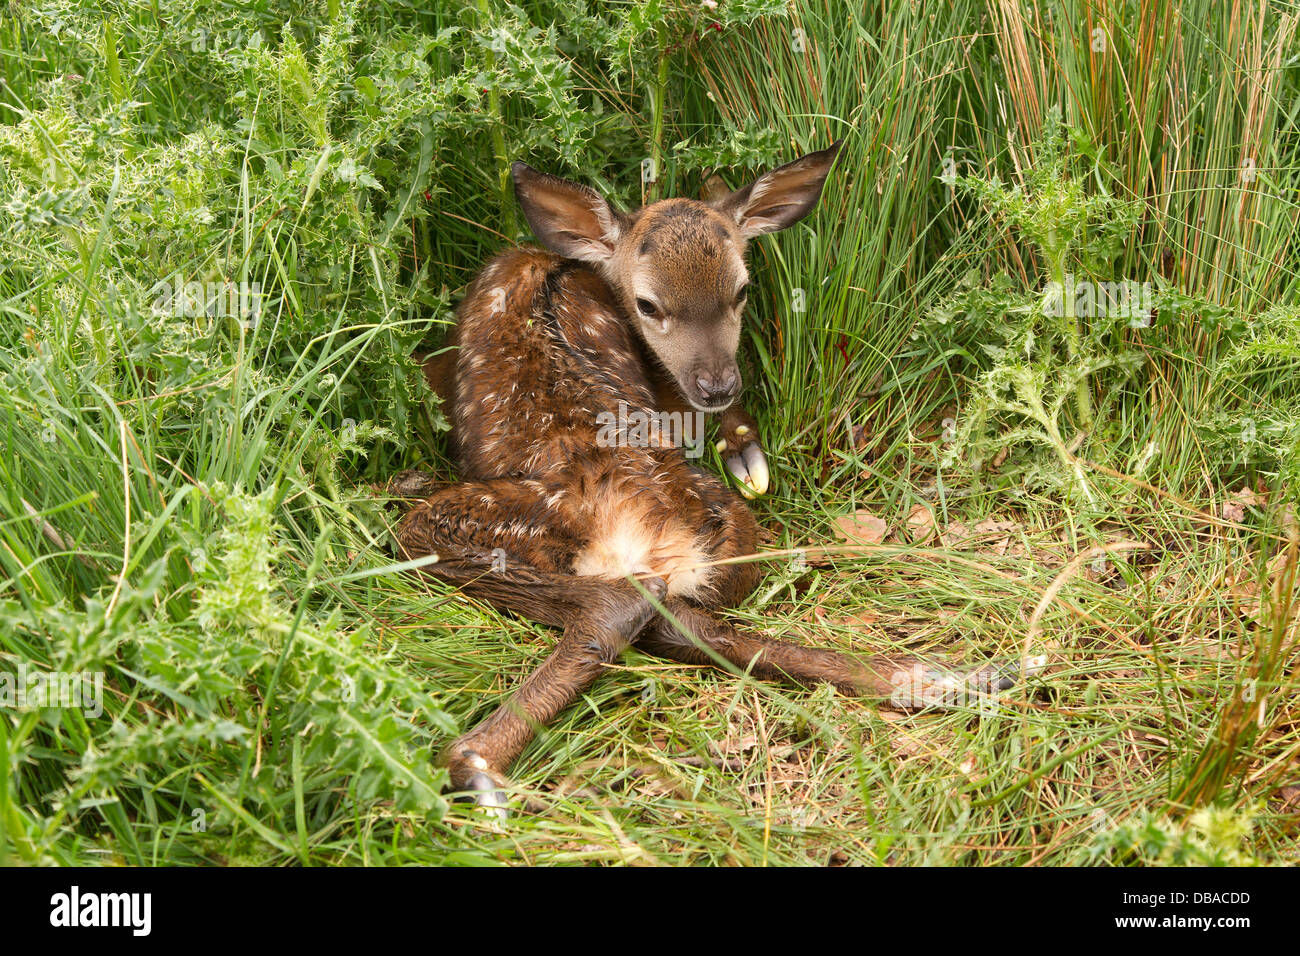 Young newly born red deer, cervus elaphus in vegetation - Stock Image